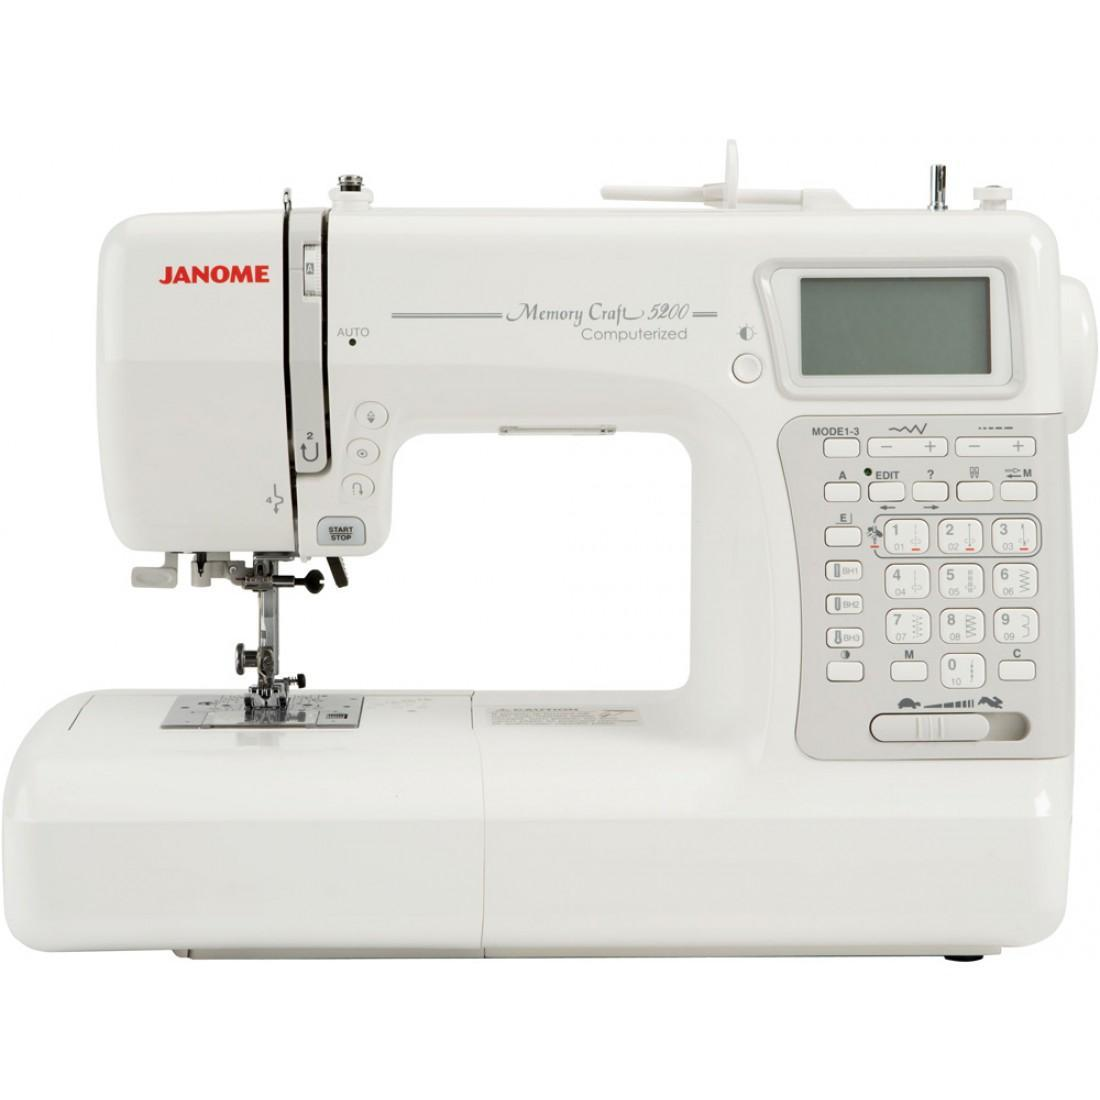 Janome Memory Craft 5200 HC, White швейная машина janome memory craft 12000